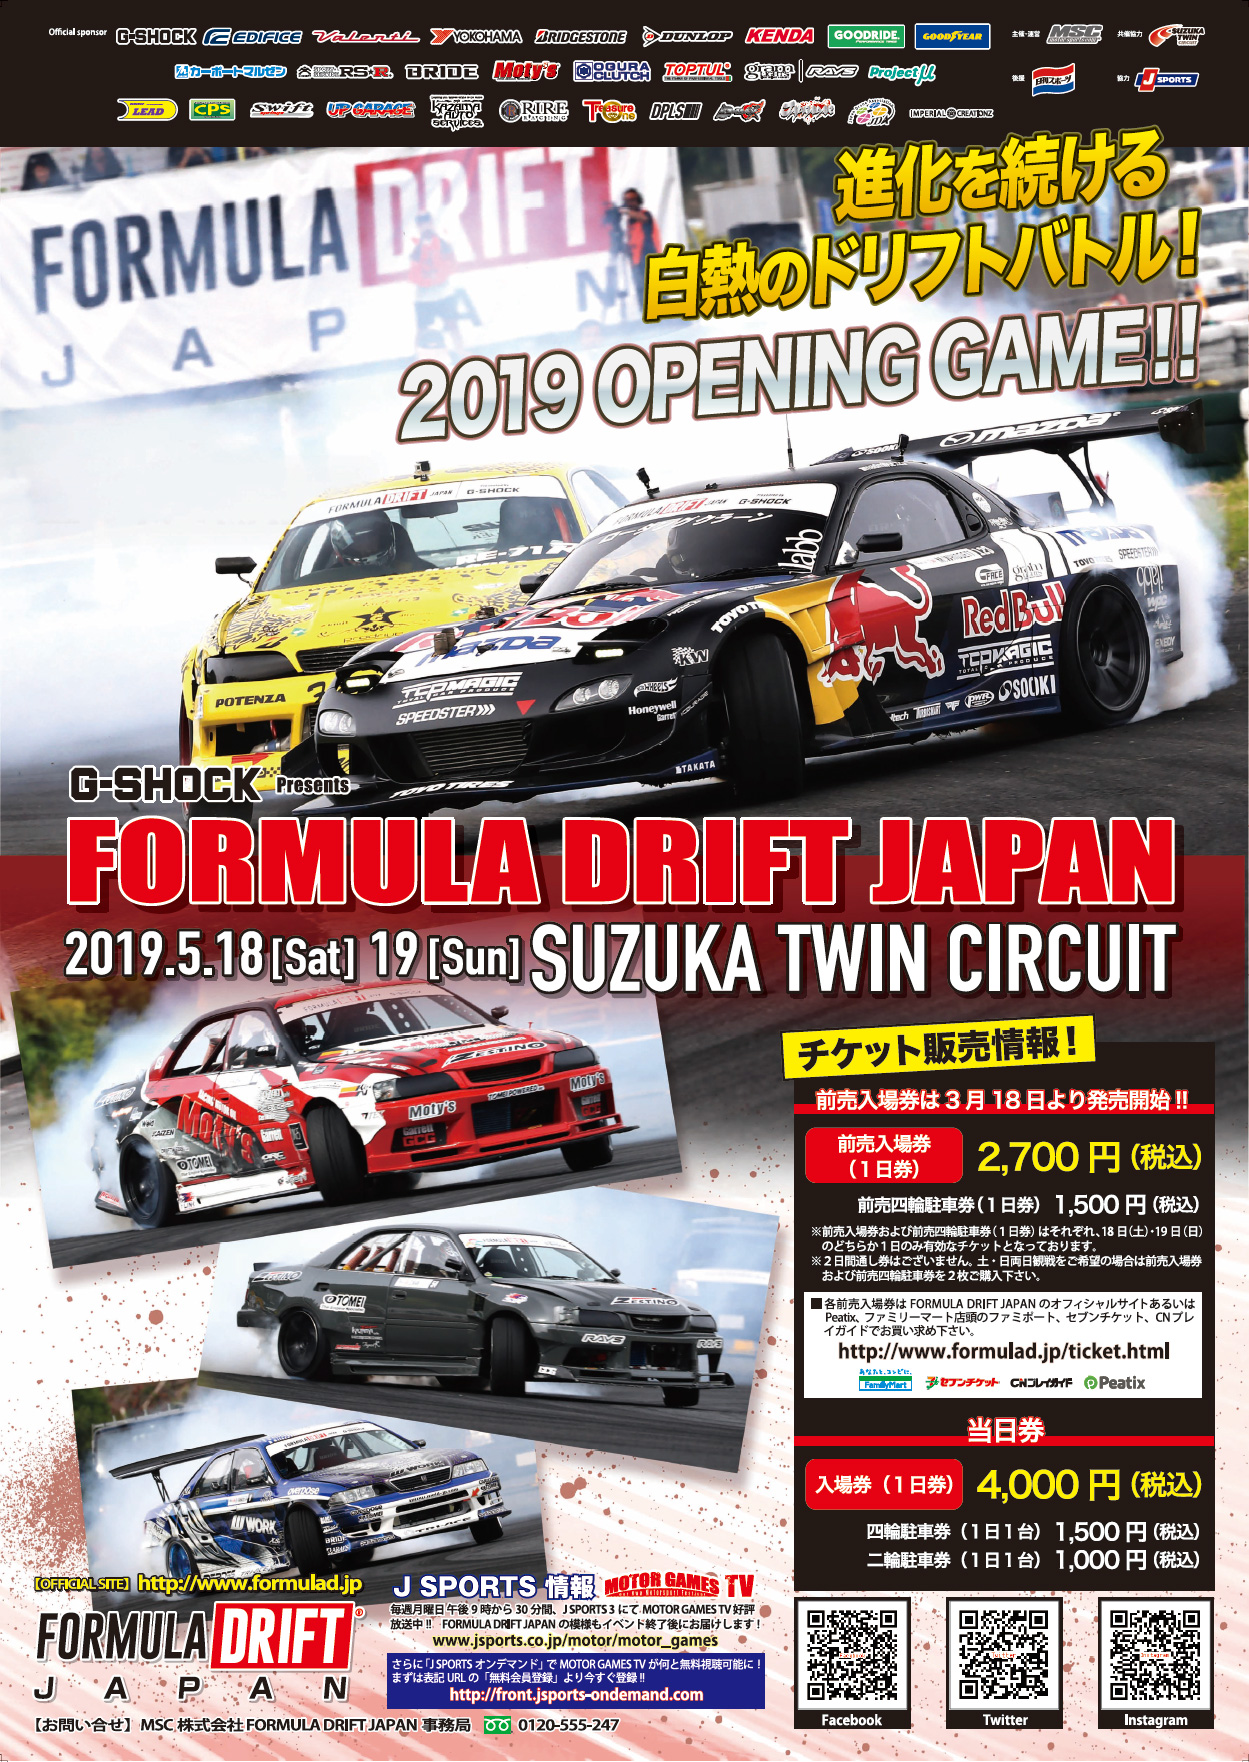 FORMULA DRIFT JAPAN – SUZUKA TWIN CIRCUIT (2019.5.18 / 19)